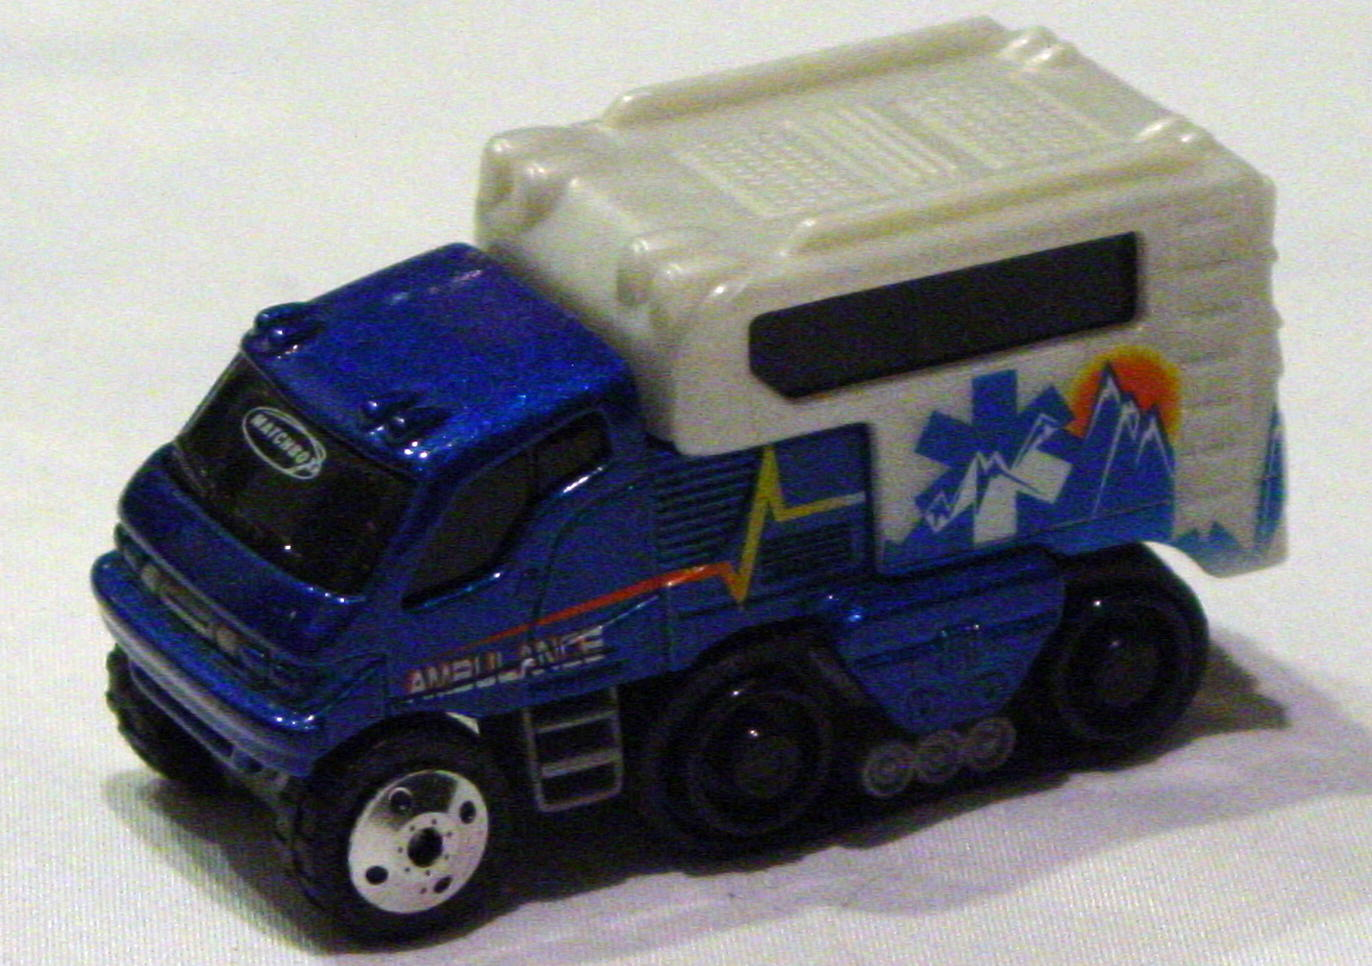 Offshore SuperFast 06 I 1 - Arctic Track Truck darker met Blue Ambulance made in China